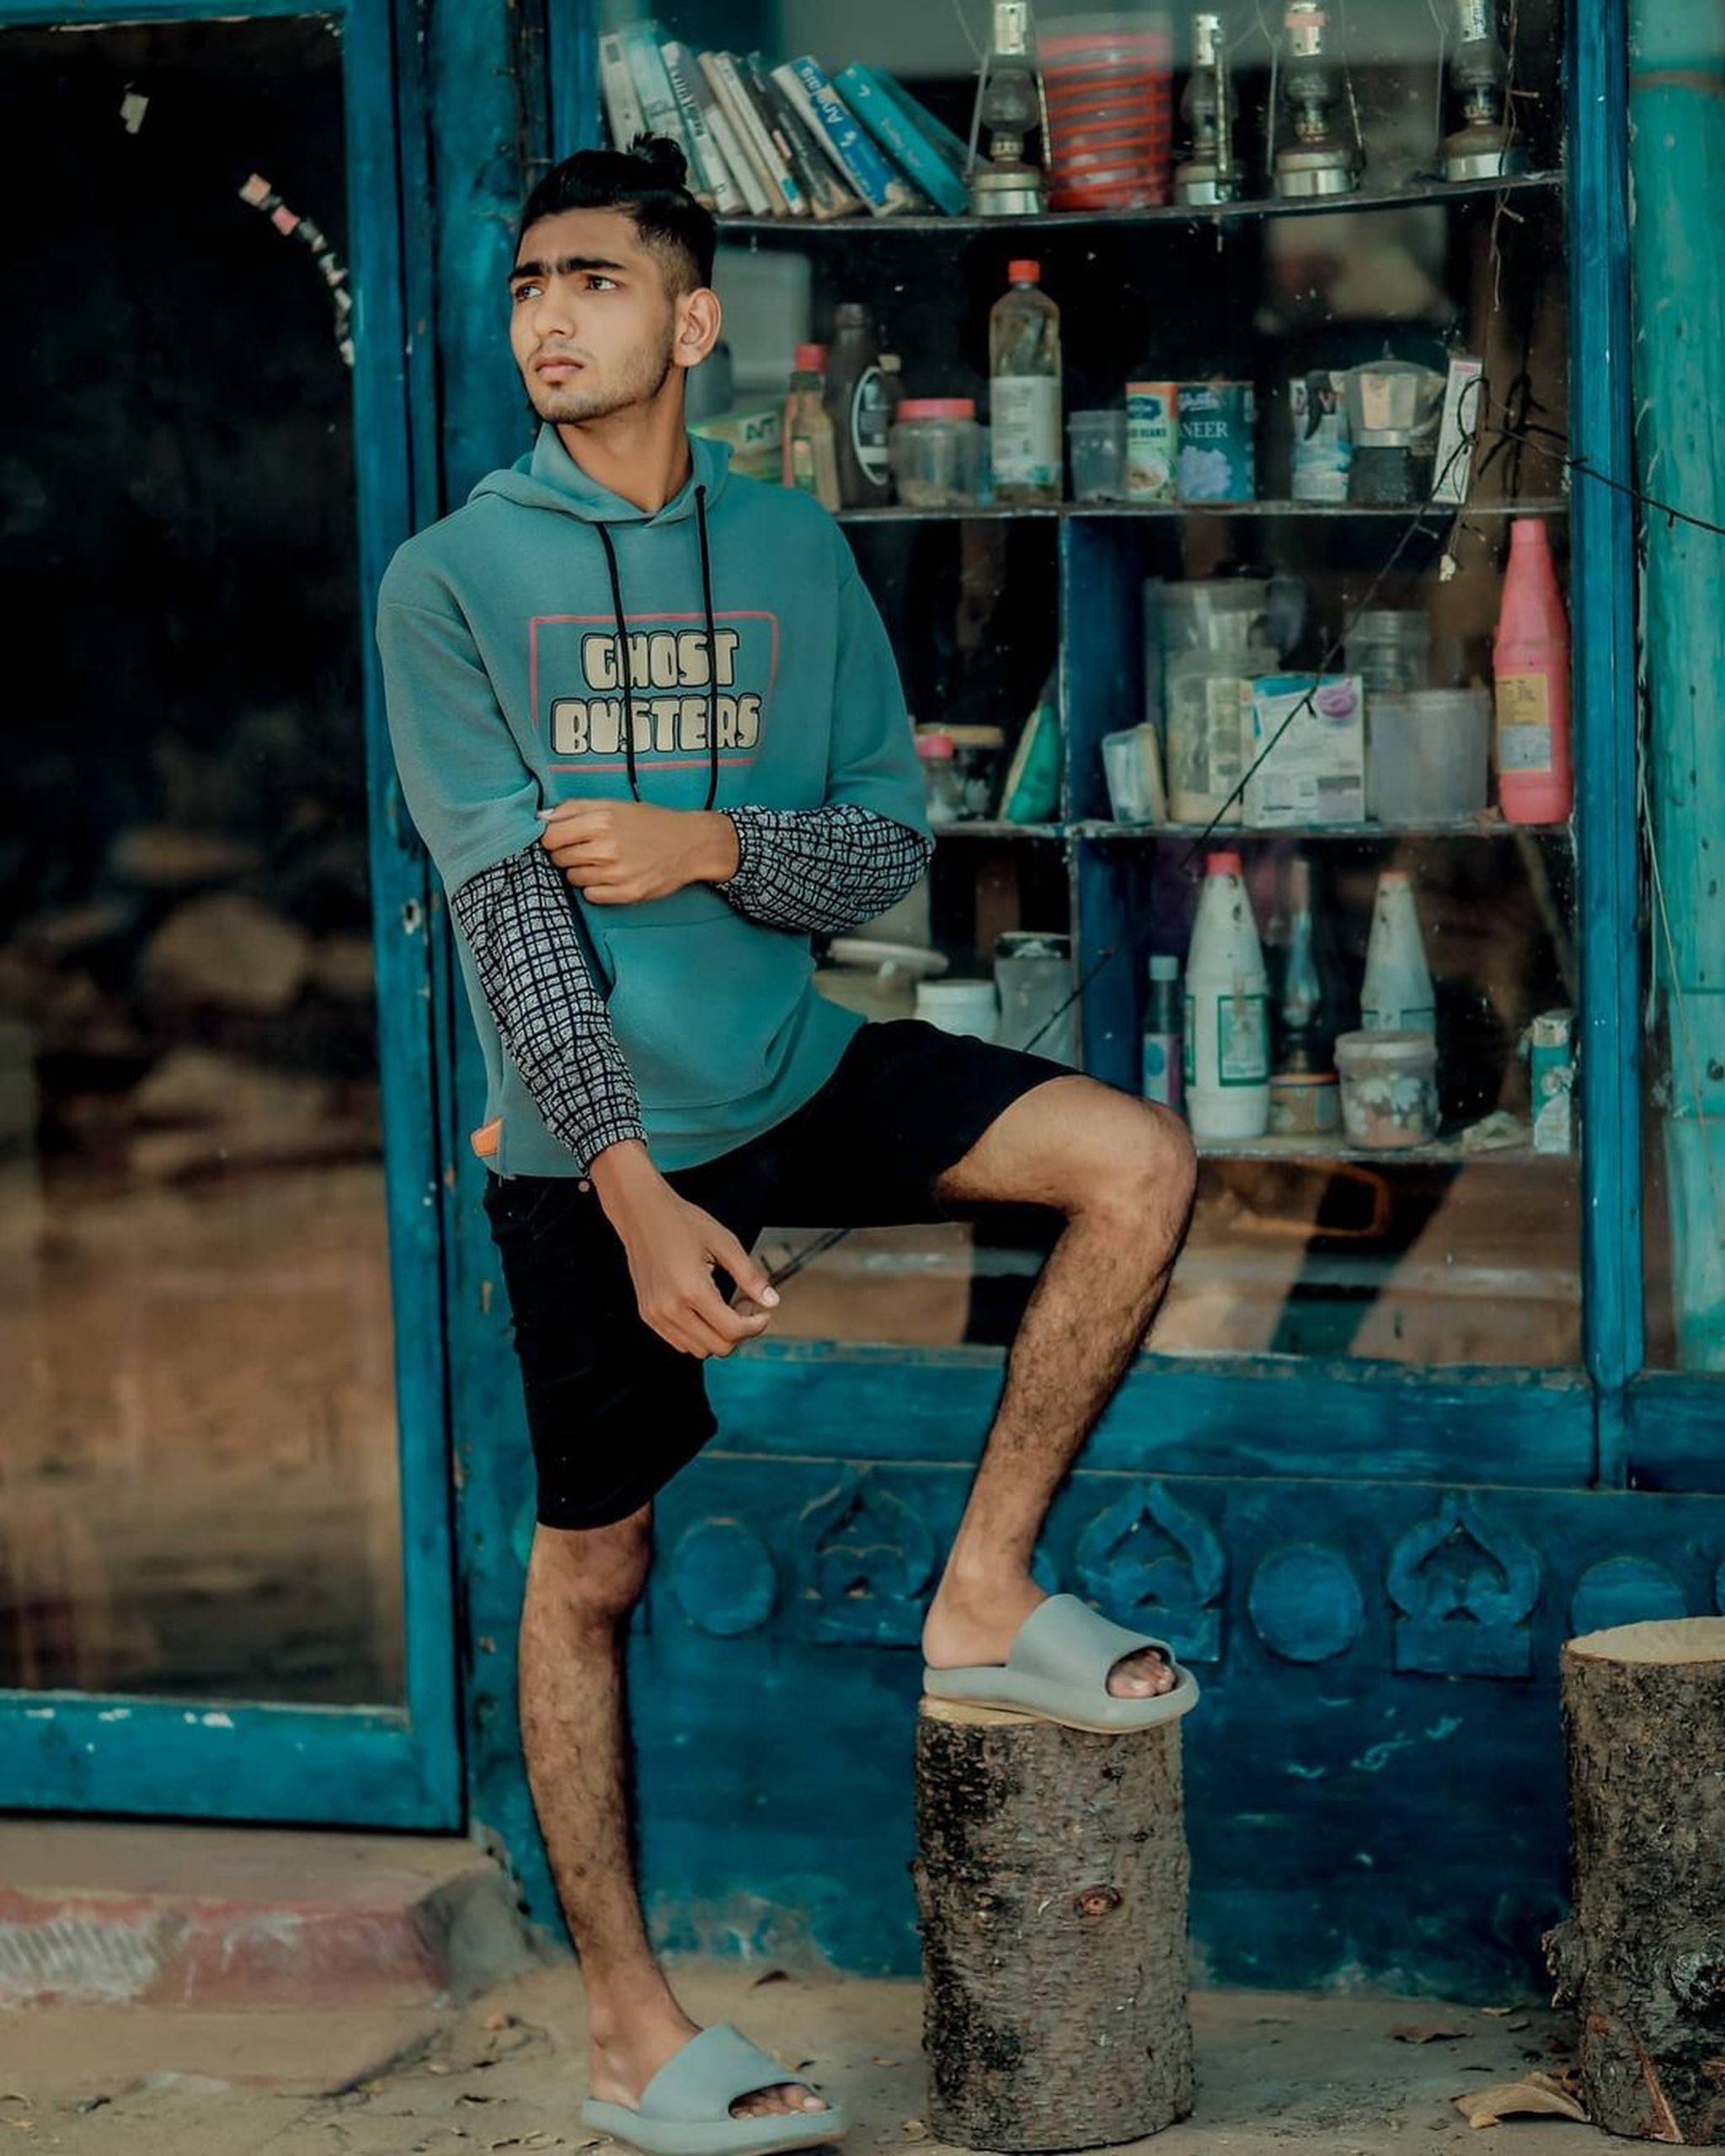 Boy posing outside stall